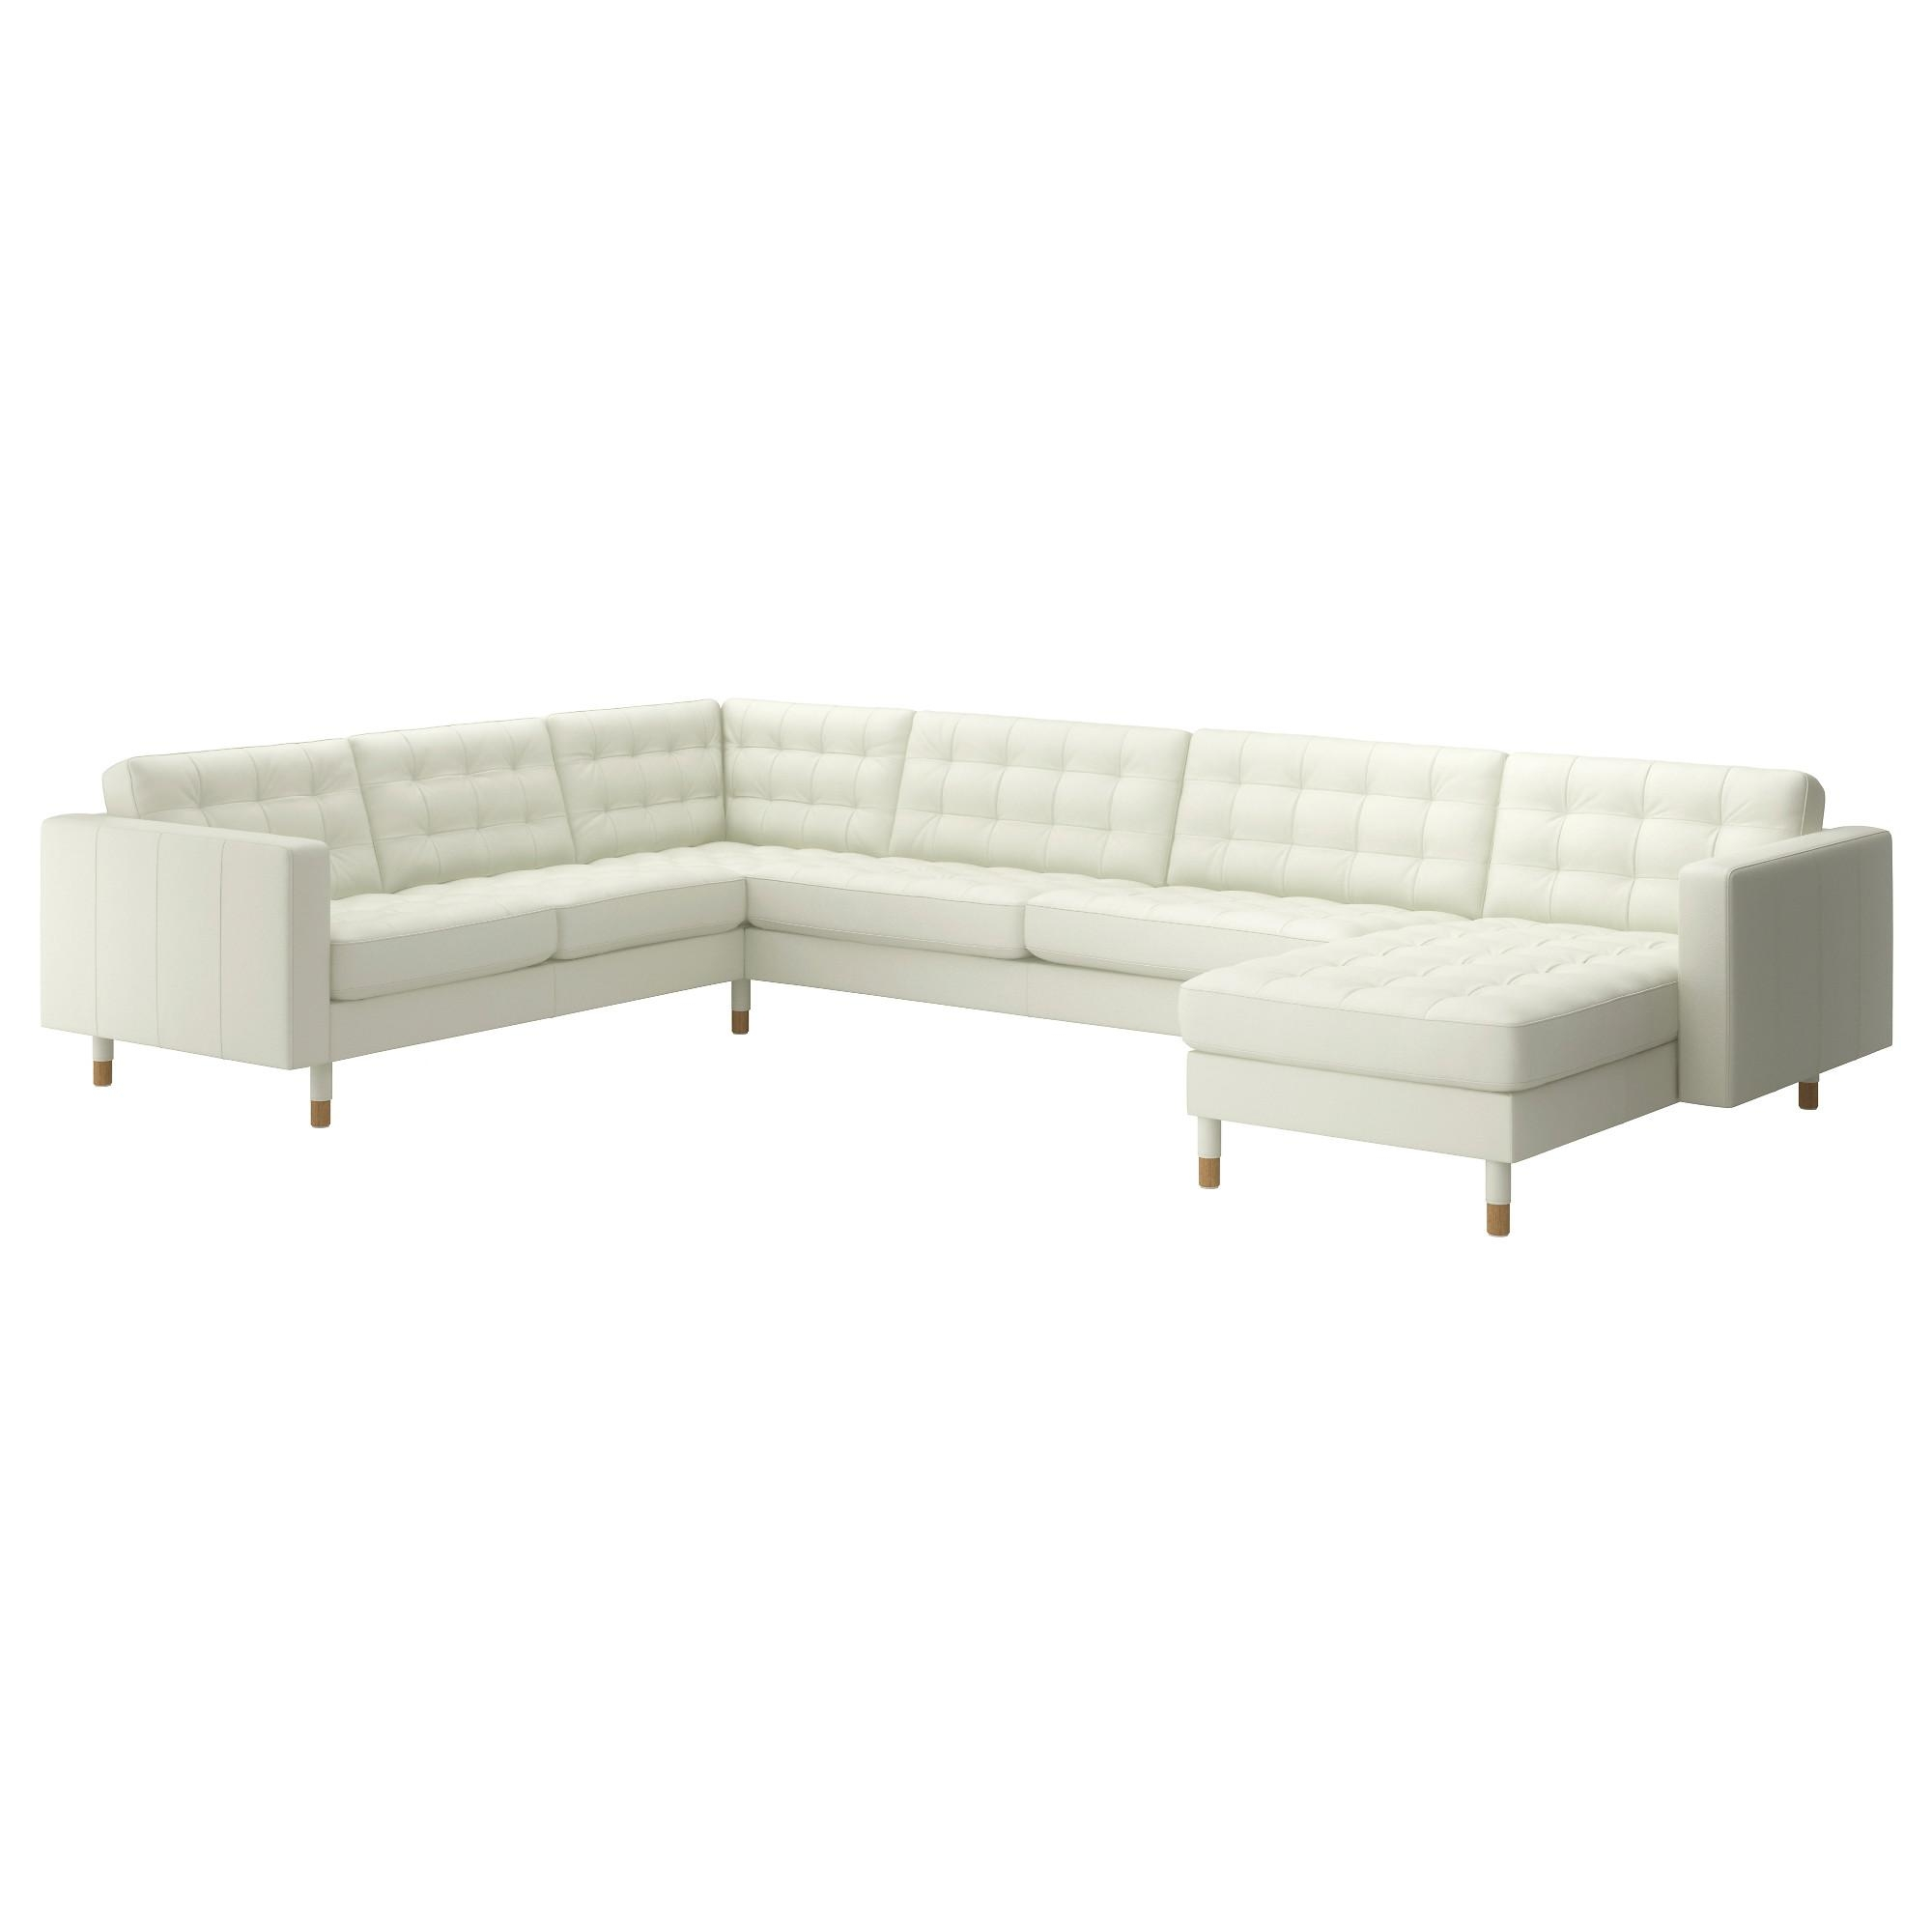 Sectional Sofas & Couches – Ikea Throughout Short Sofas (Image 14 of 20)